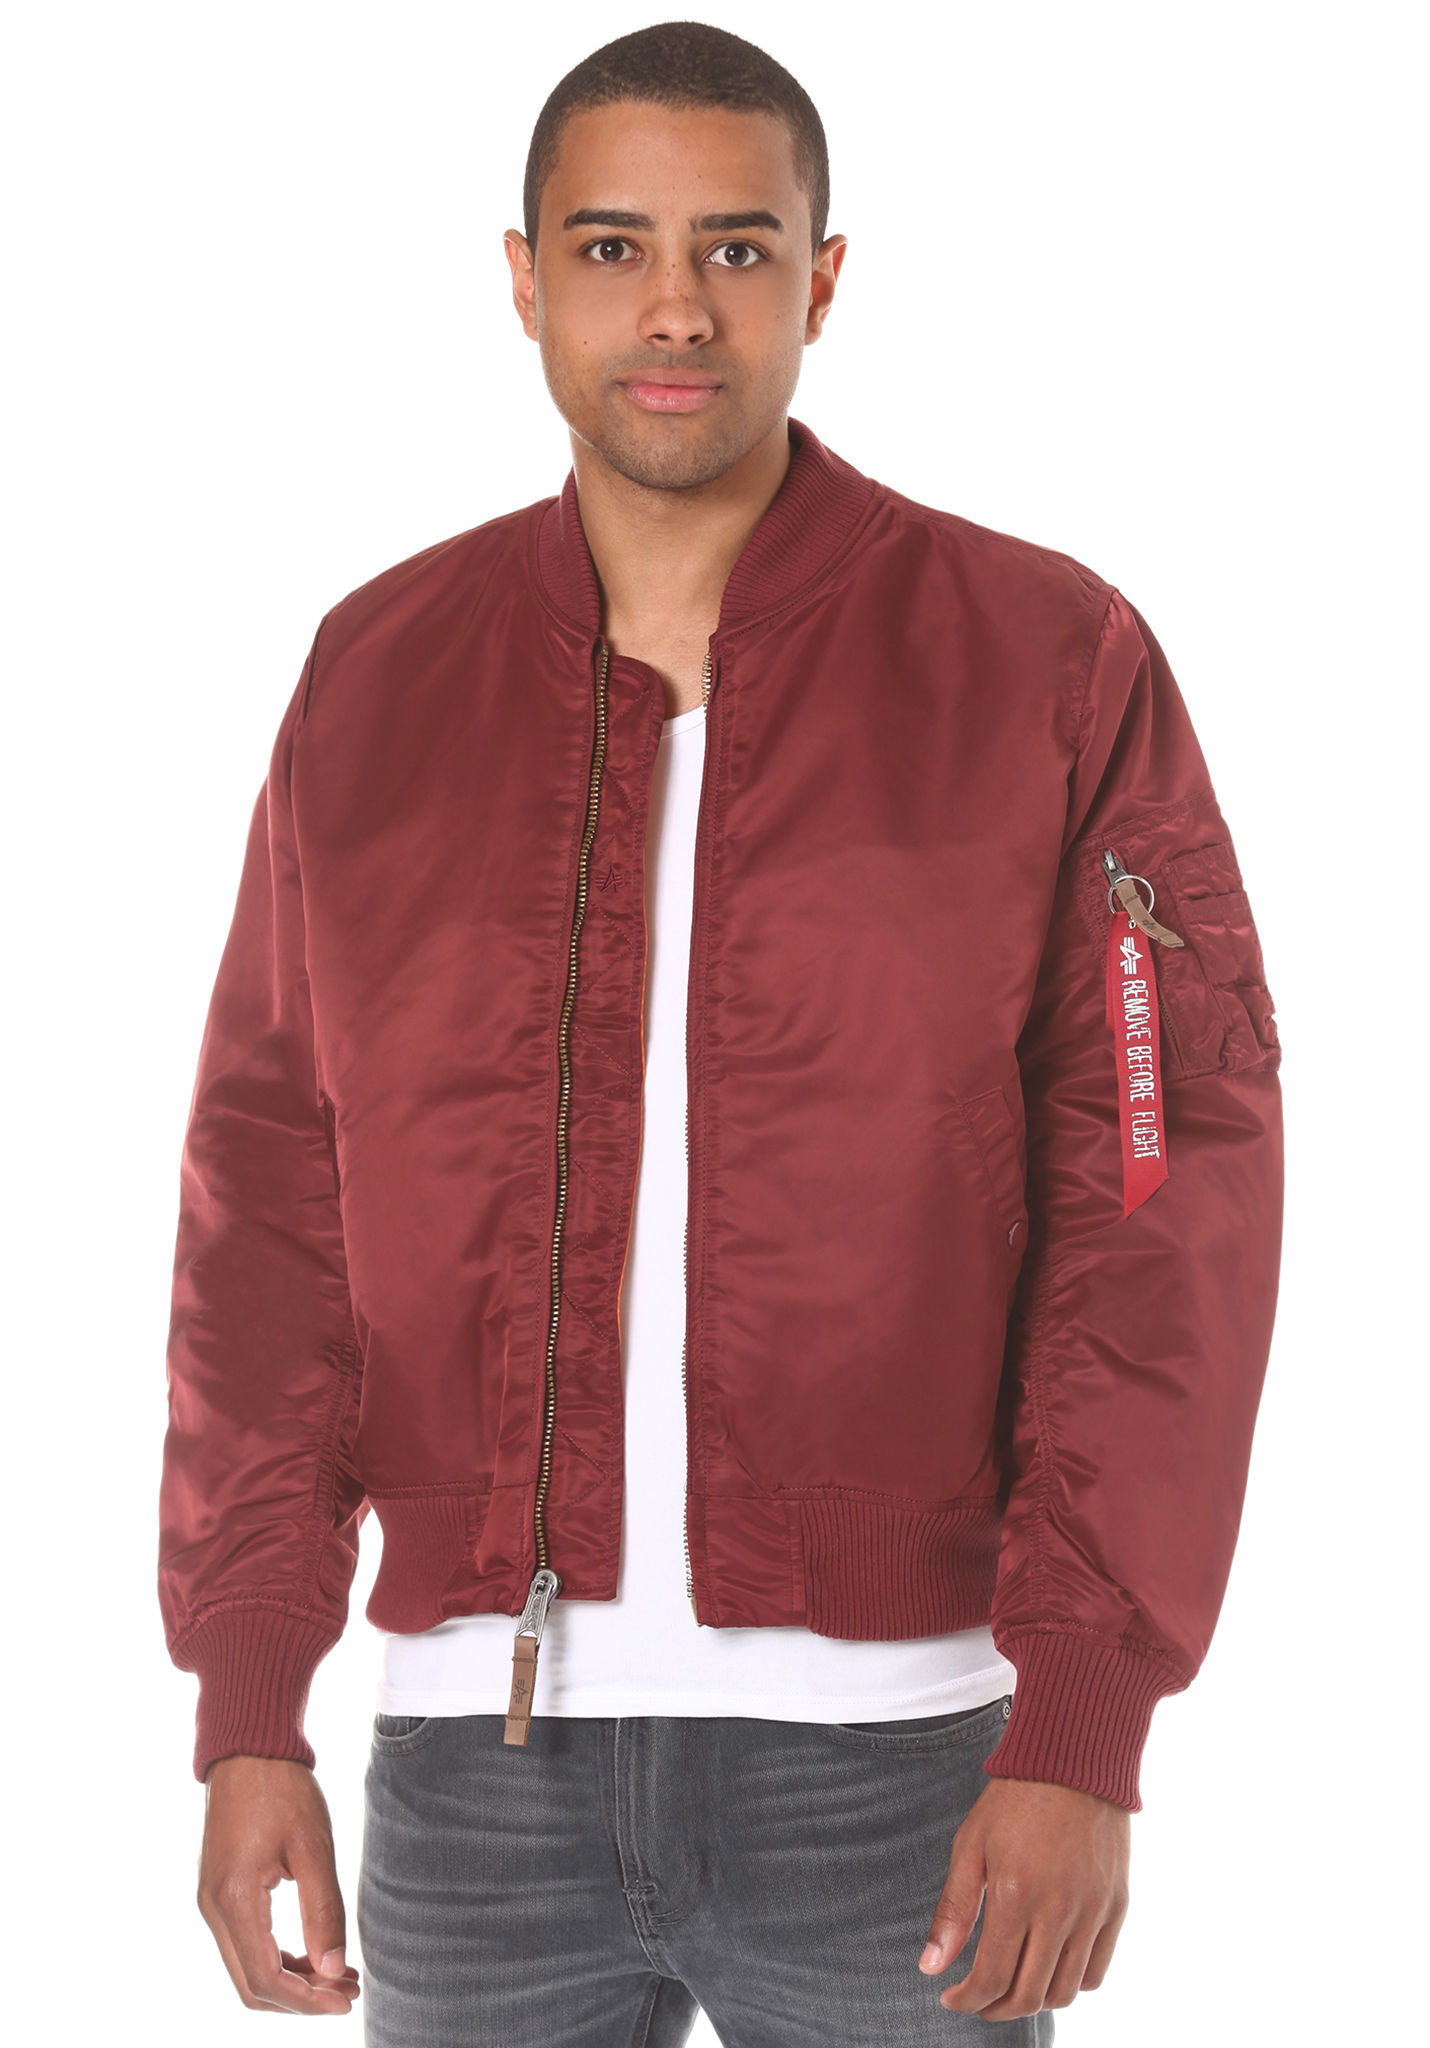 Veste Rouge Sports Vf Homme Planet Alpha 59 Ma 1 Industries Pour xHRfqXw6